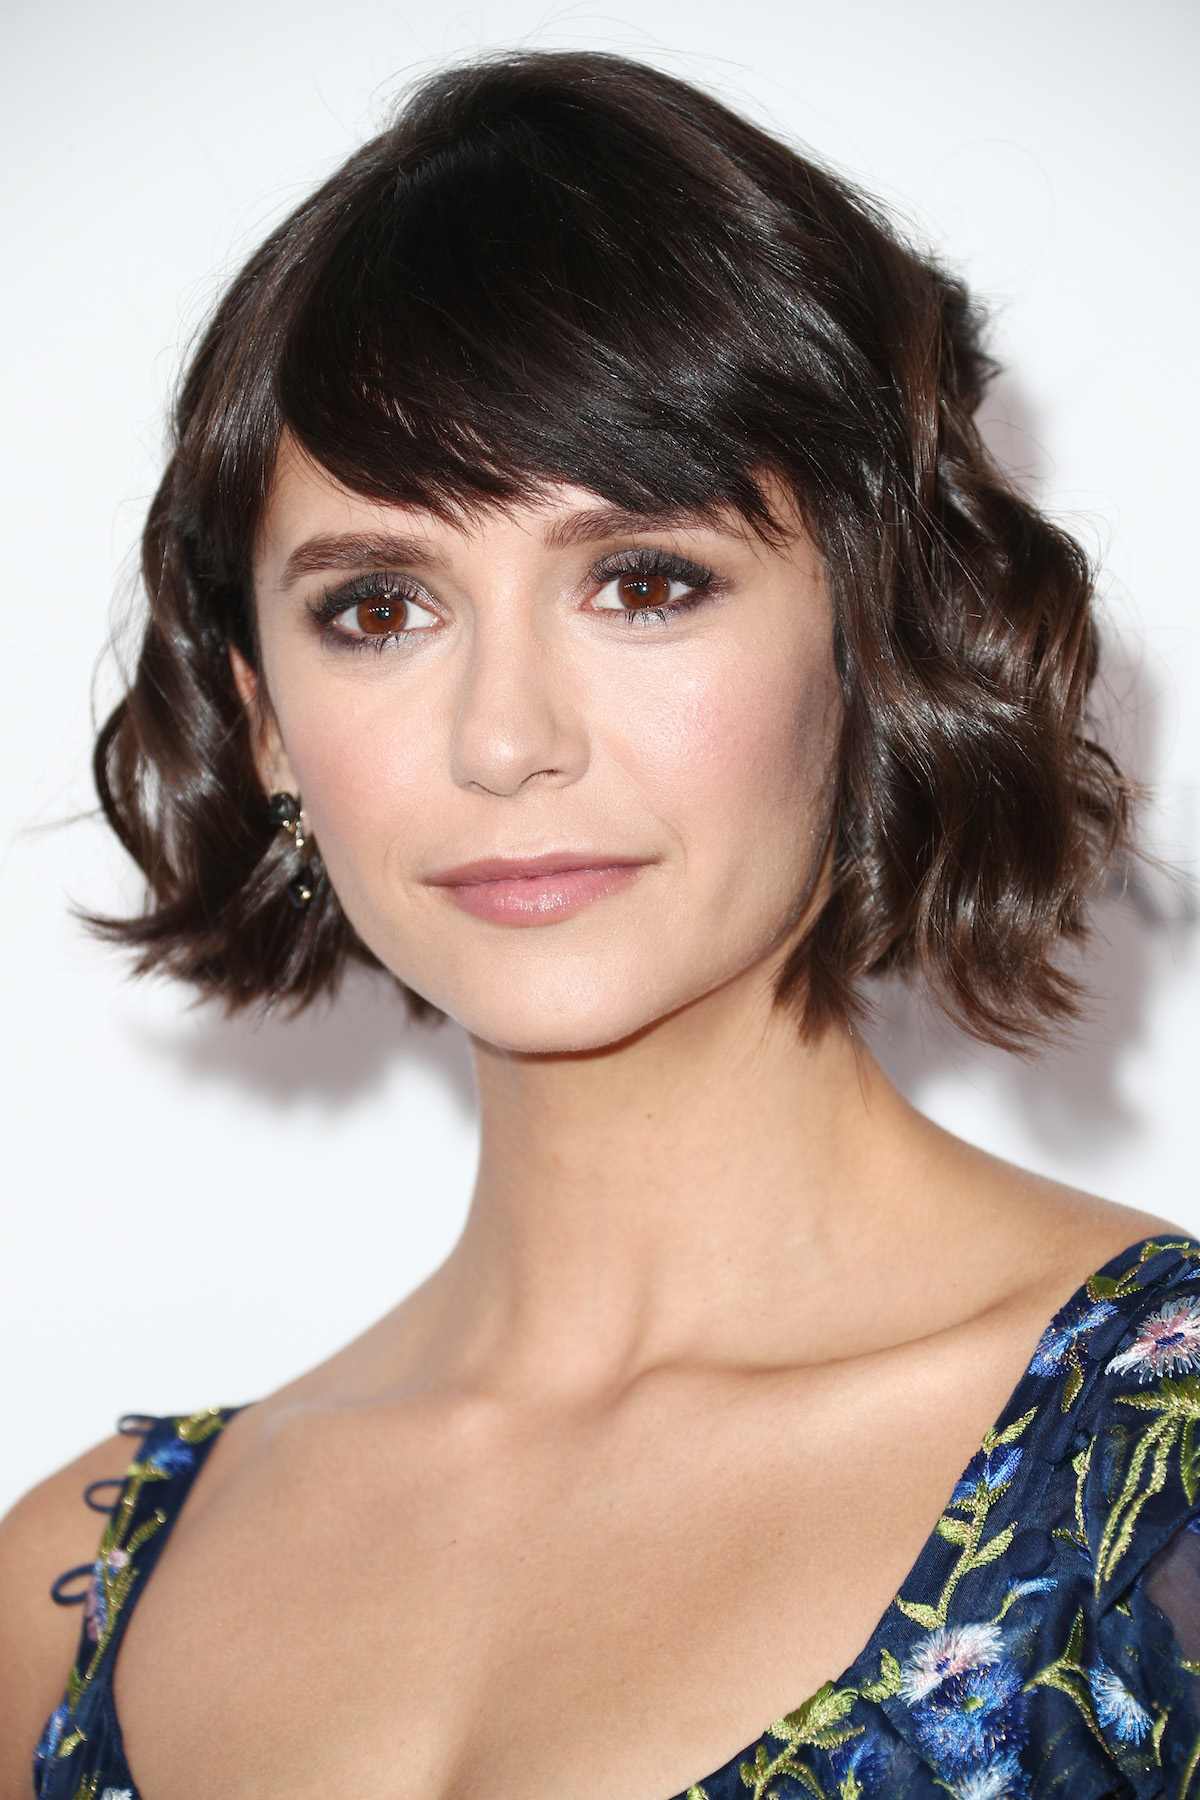 Short Haircut Ideas Inspired By Celebrities Gorgeous Cuts Real Simple